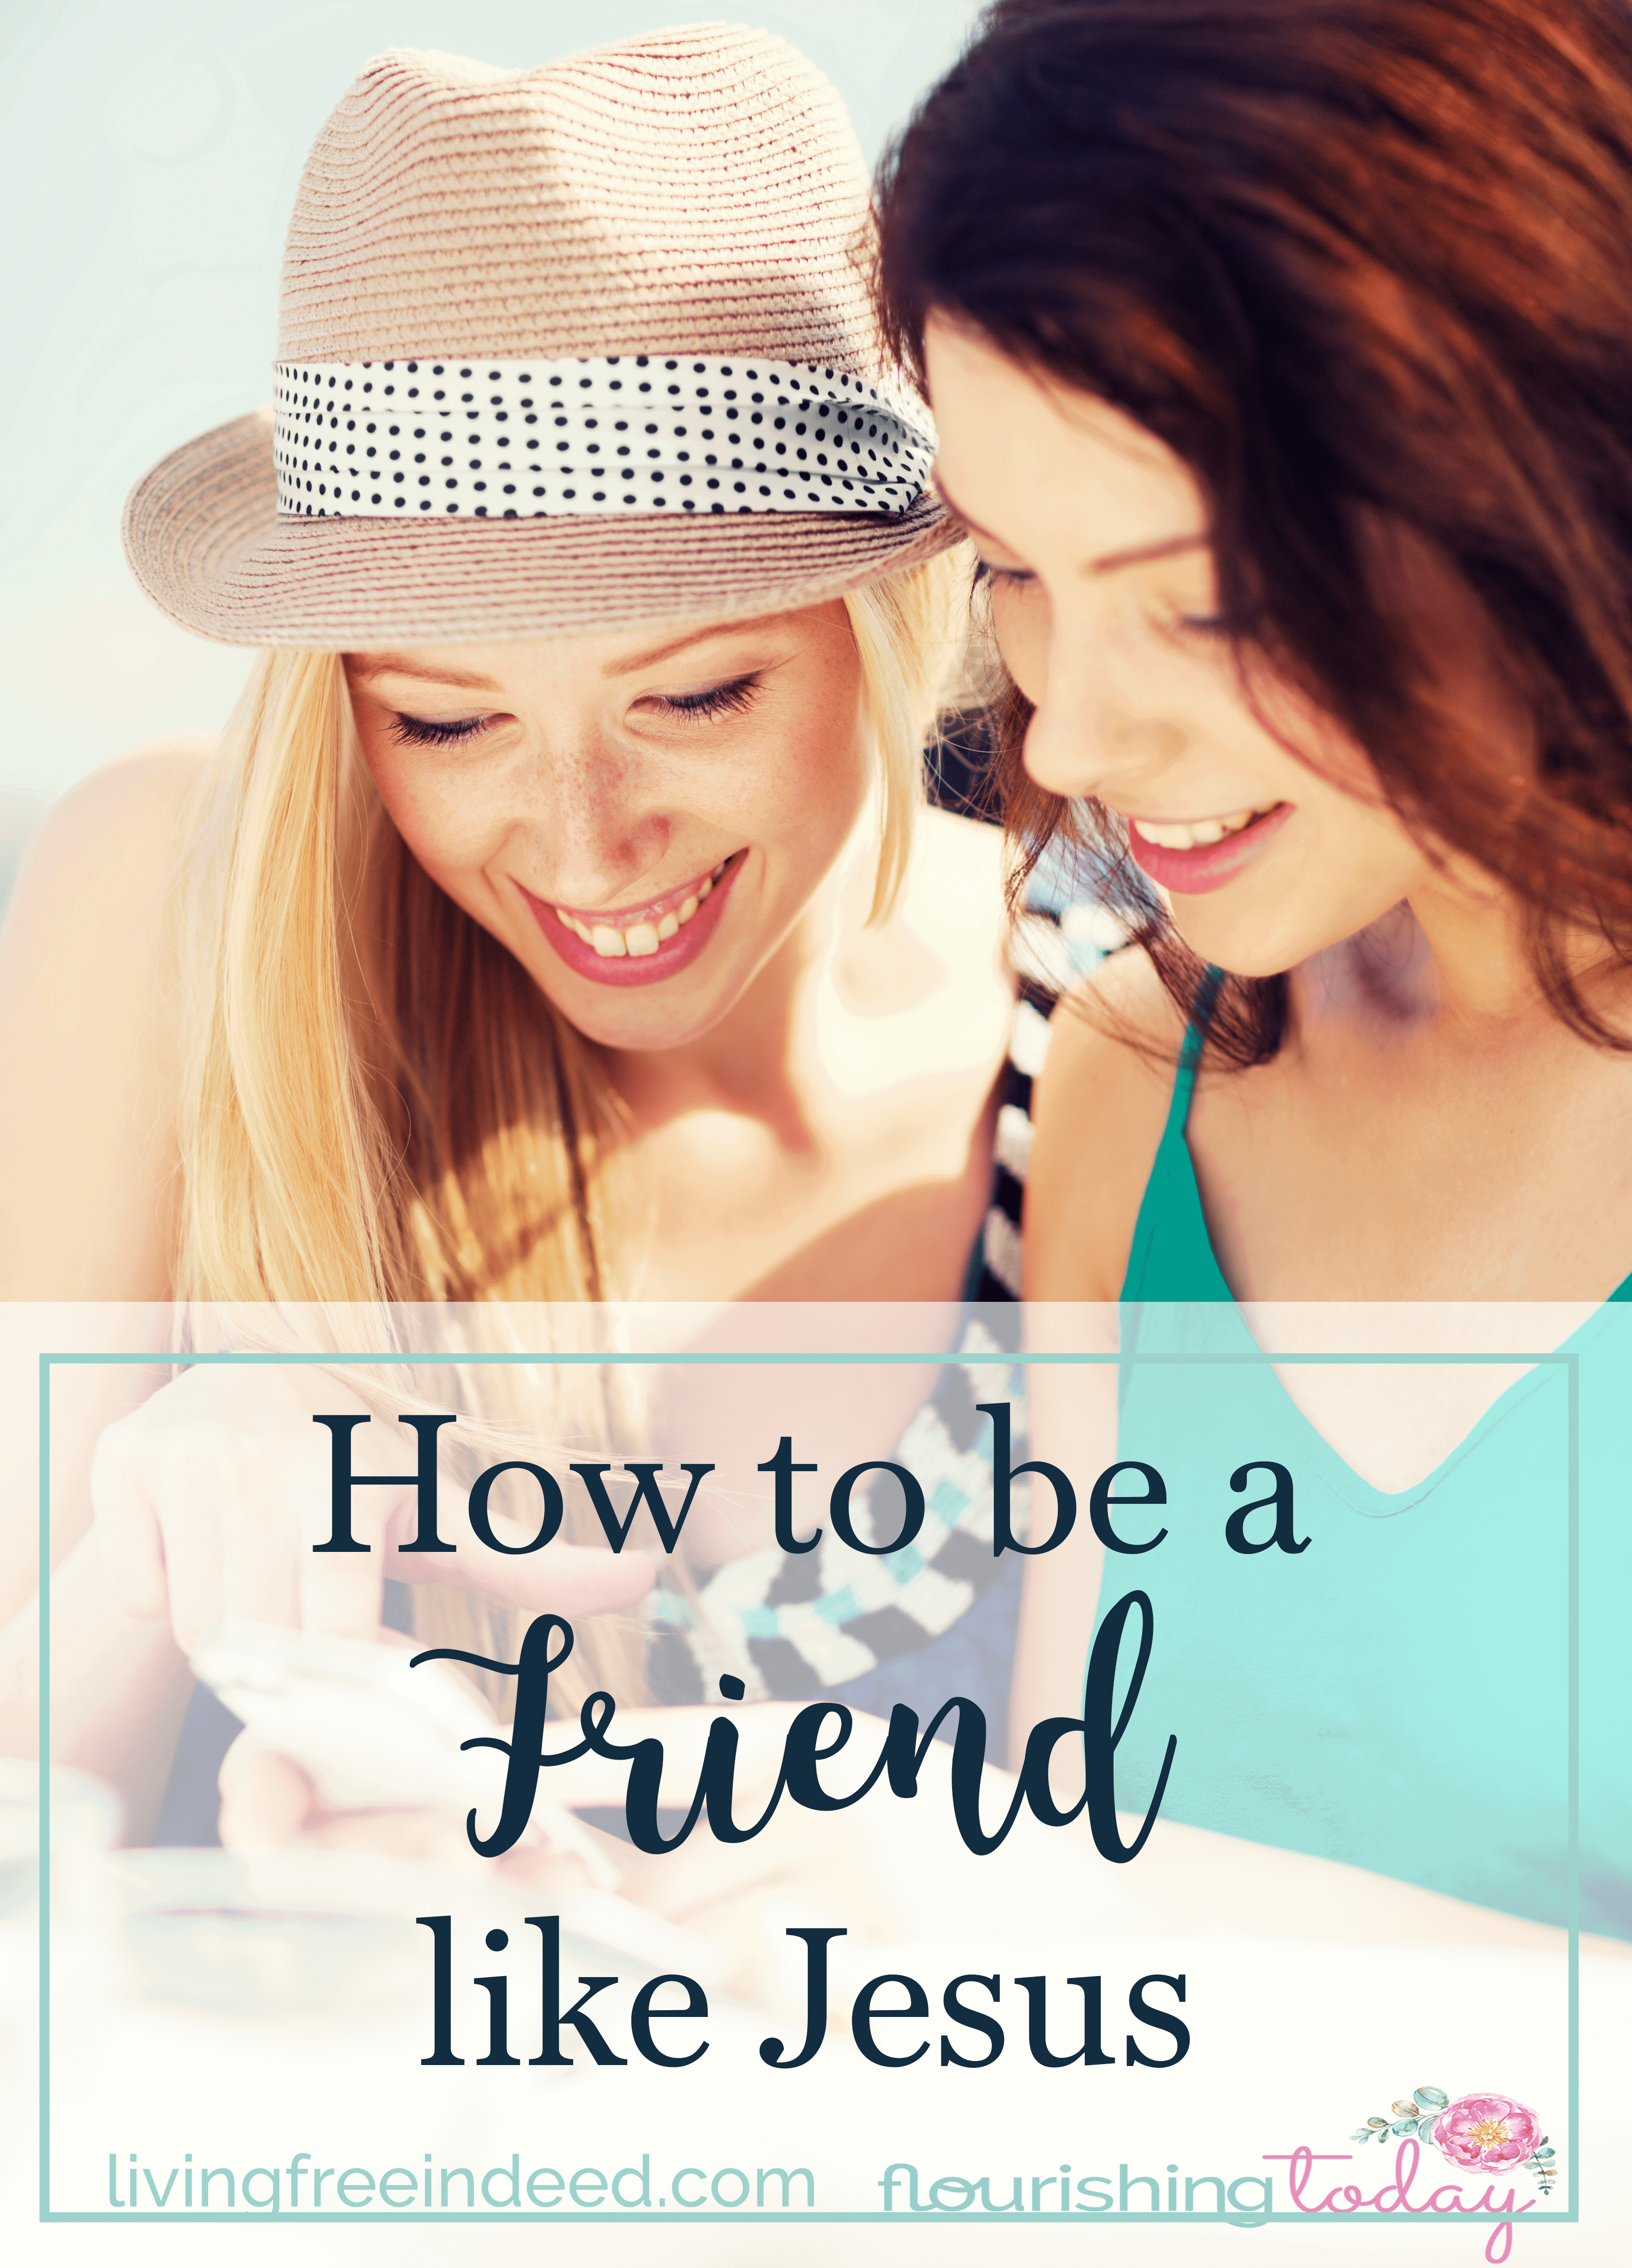 How can we be a friend like Jesus? What does it mean to lay down our lives for our friends? Here are a few tips for being a friend like Jesus.